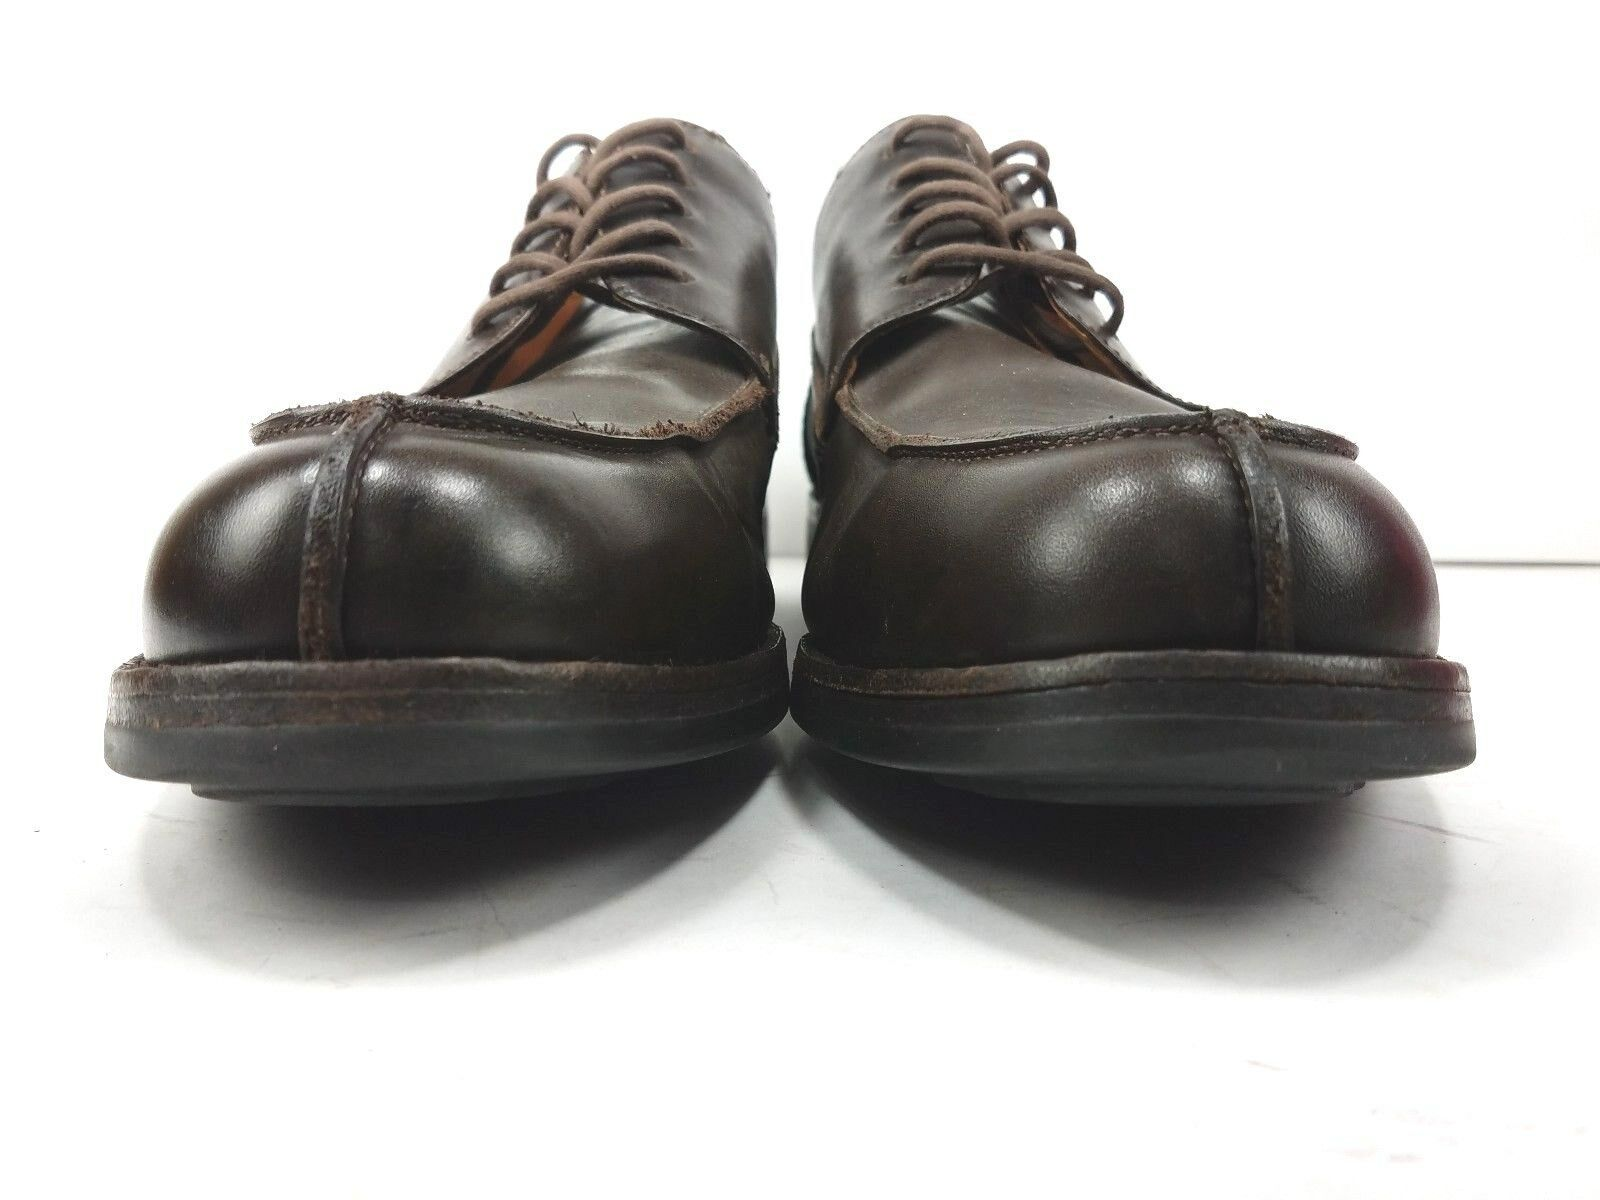 COLE HAAN Mens Size 10.5 M Oxfords Rugged Casual Brown Leather VIBRAM Soles